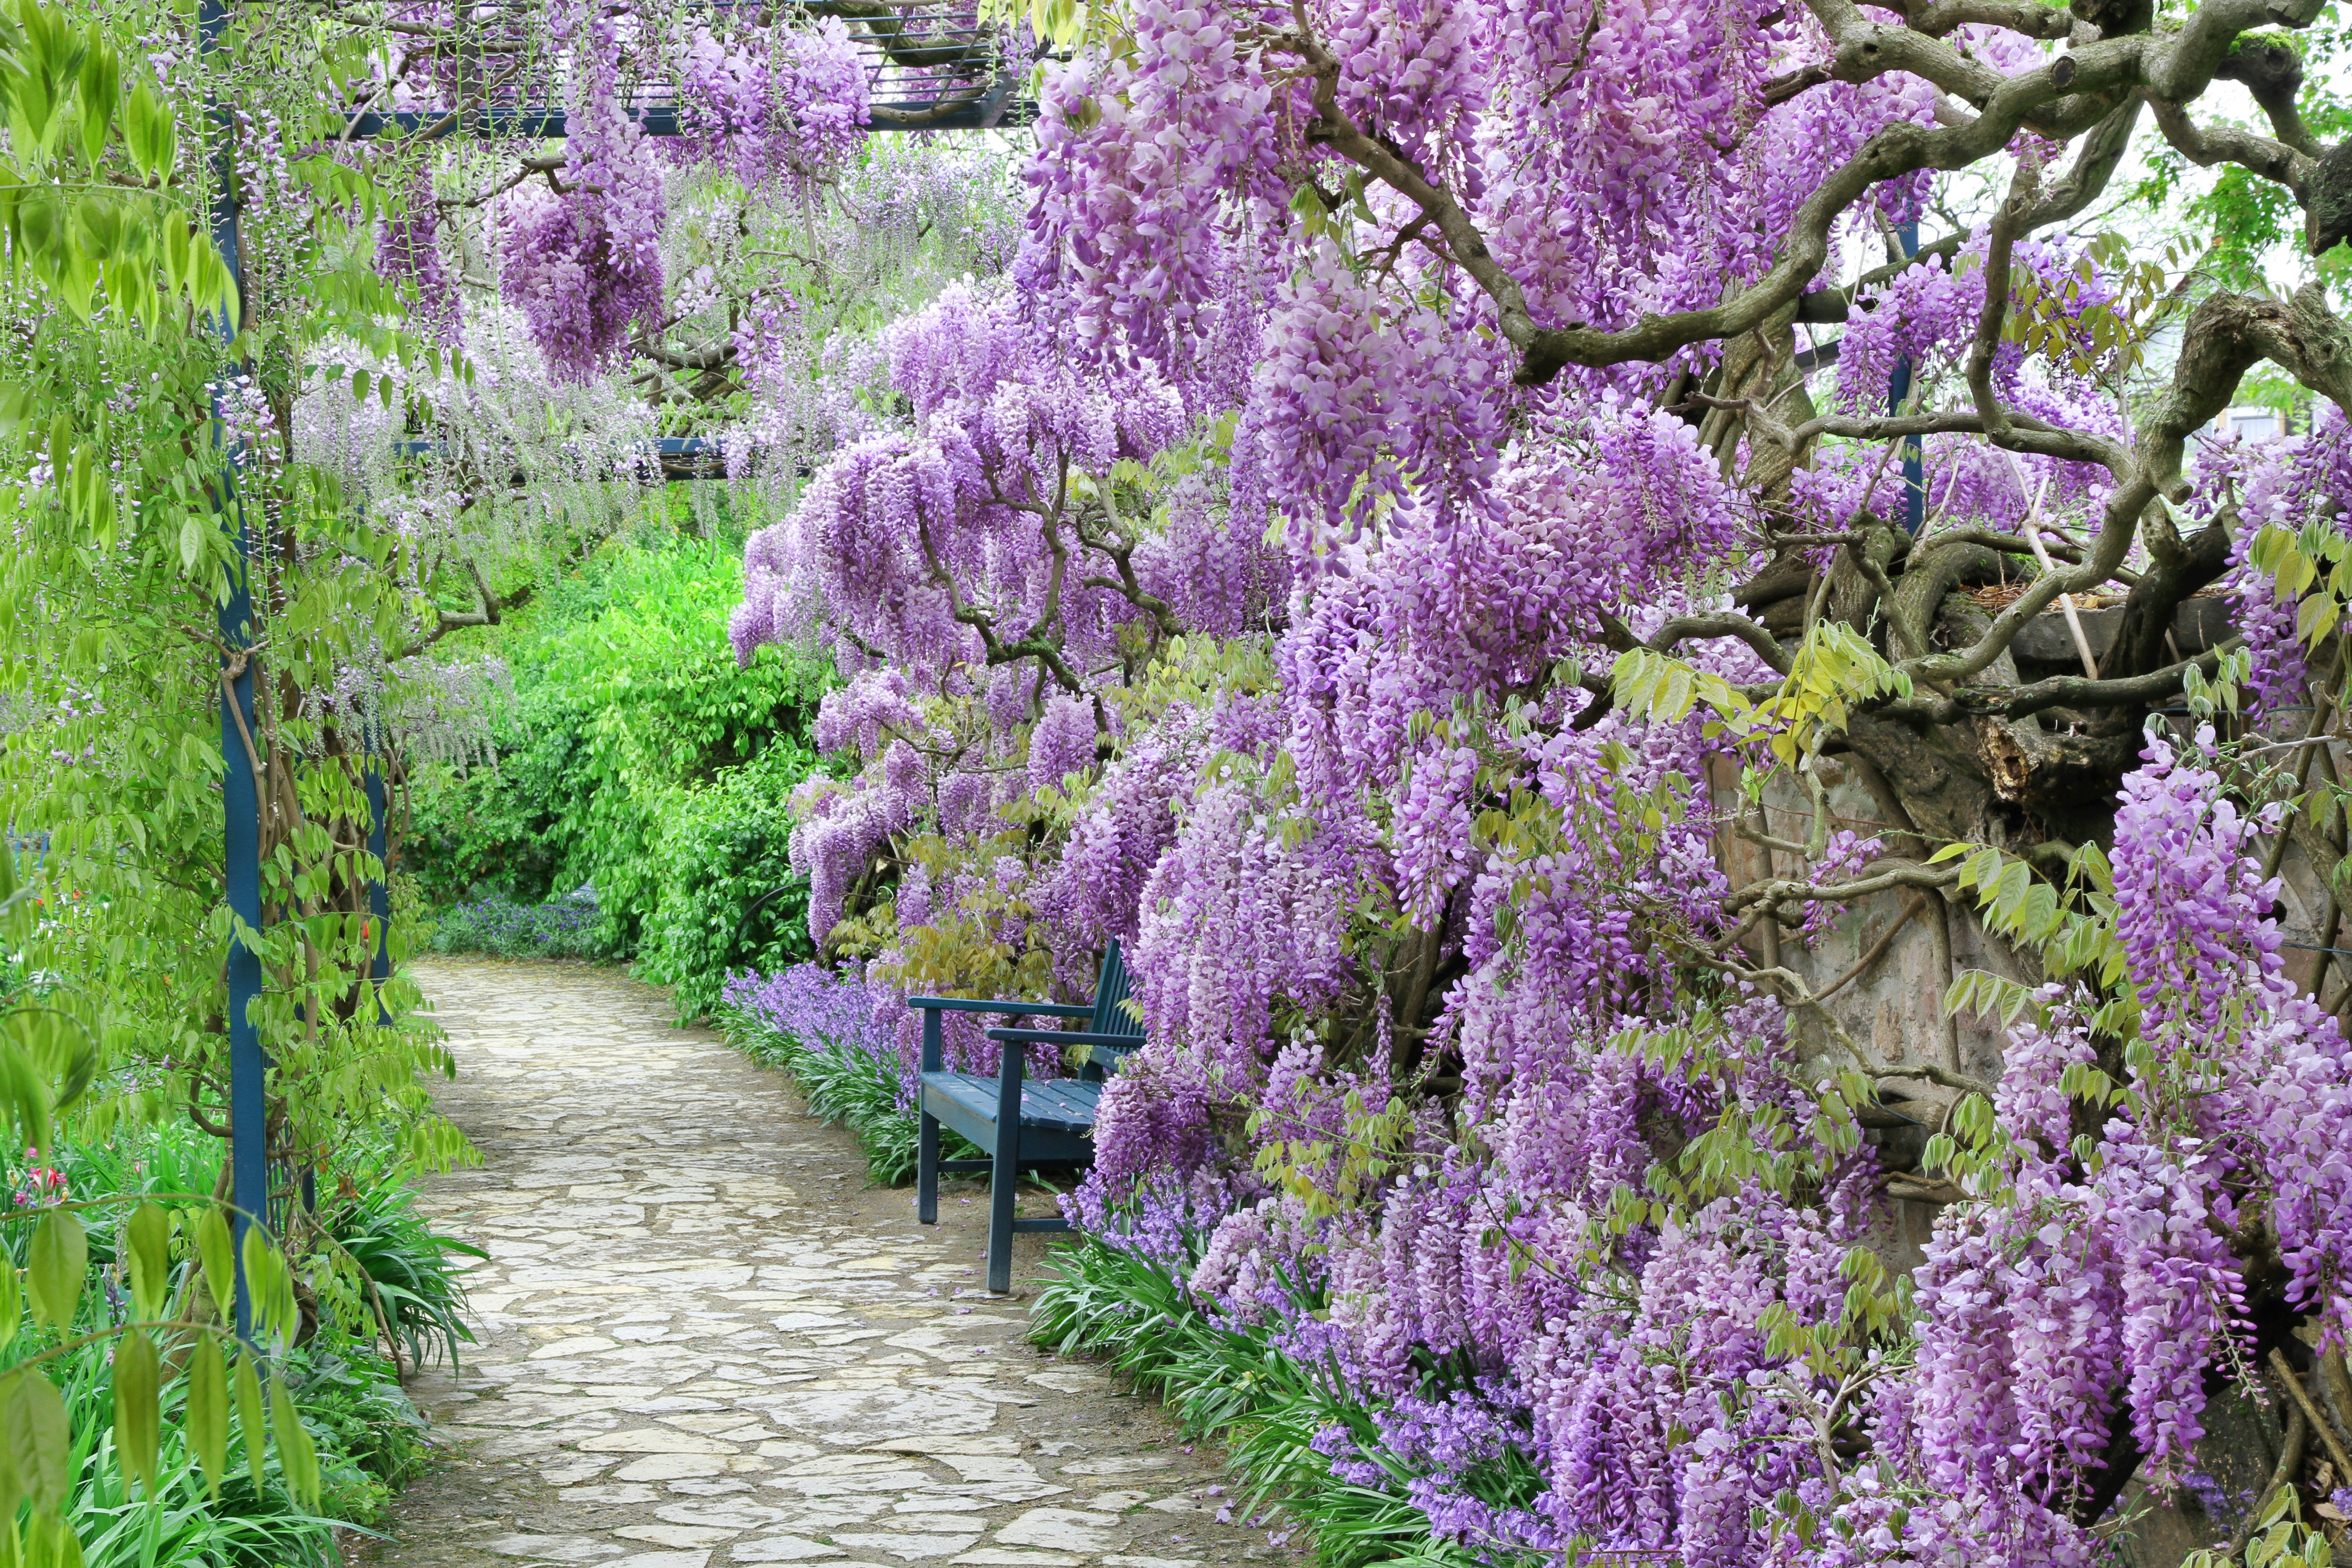 The great garden blooming wisteria blossoms in Spring